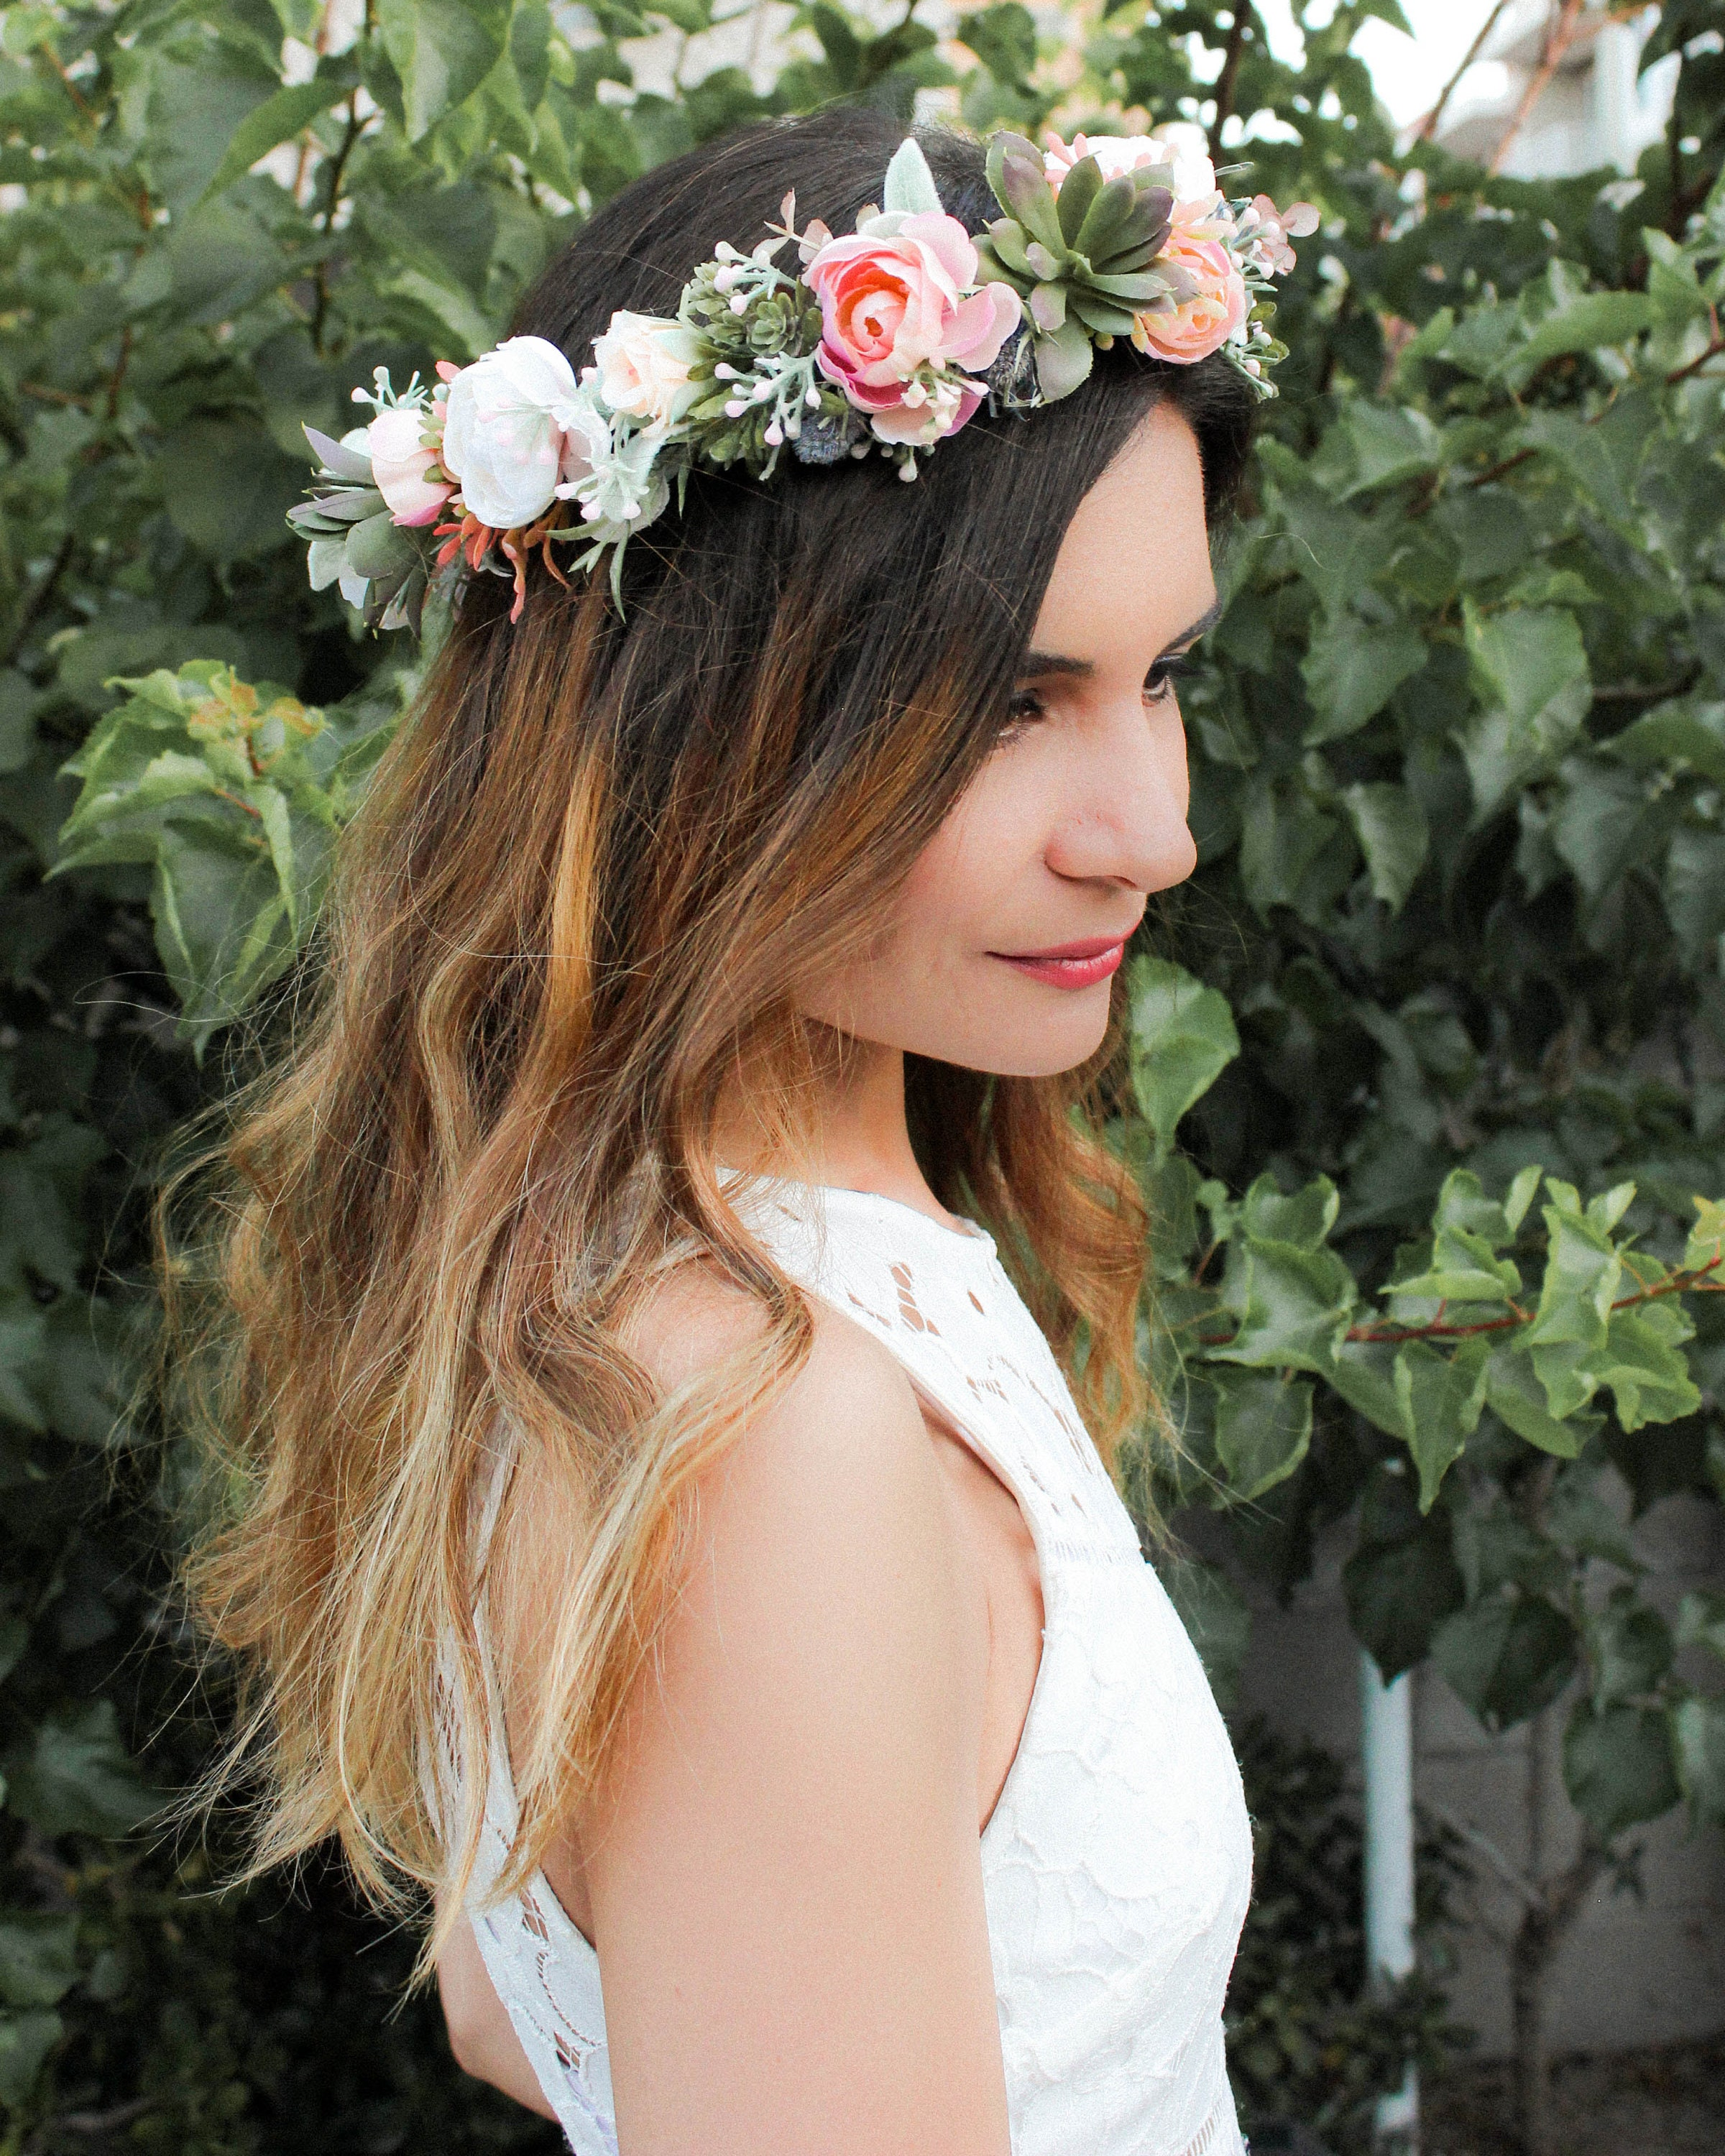 Succulent flower crown blush wedding bridal floral crown ivory succulent flower crown blush wedding bridal floral crown ivory and dusty flower head crown bohemian headpiece sage greenery leaves izmirmasajfo